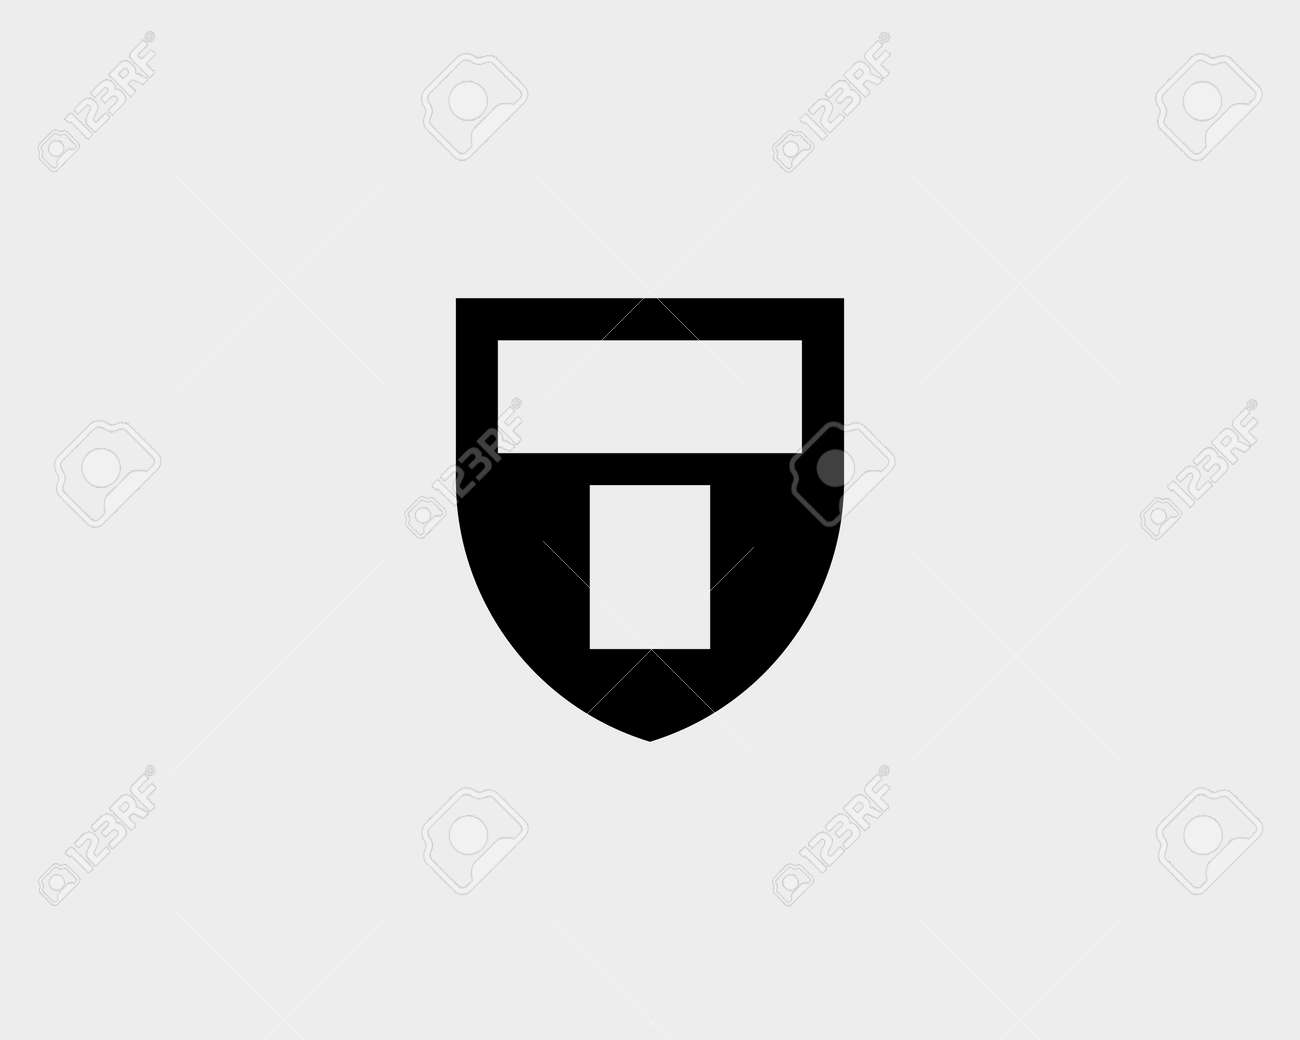 Abstract Letter T Shield Design Template Royalty Free Cliparts ...